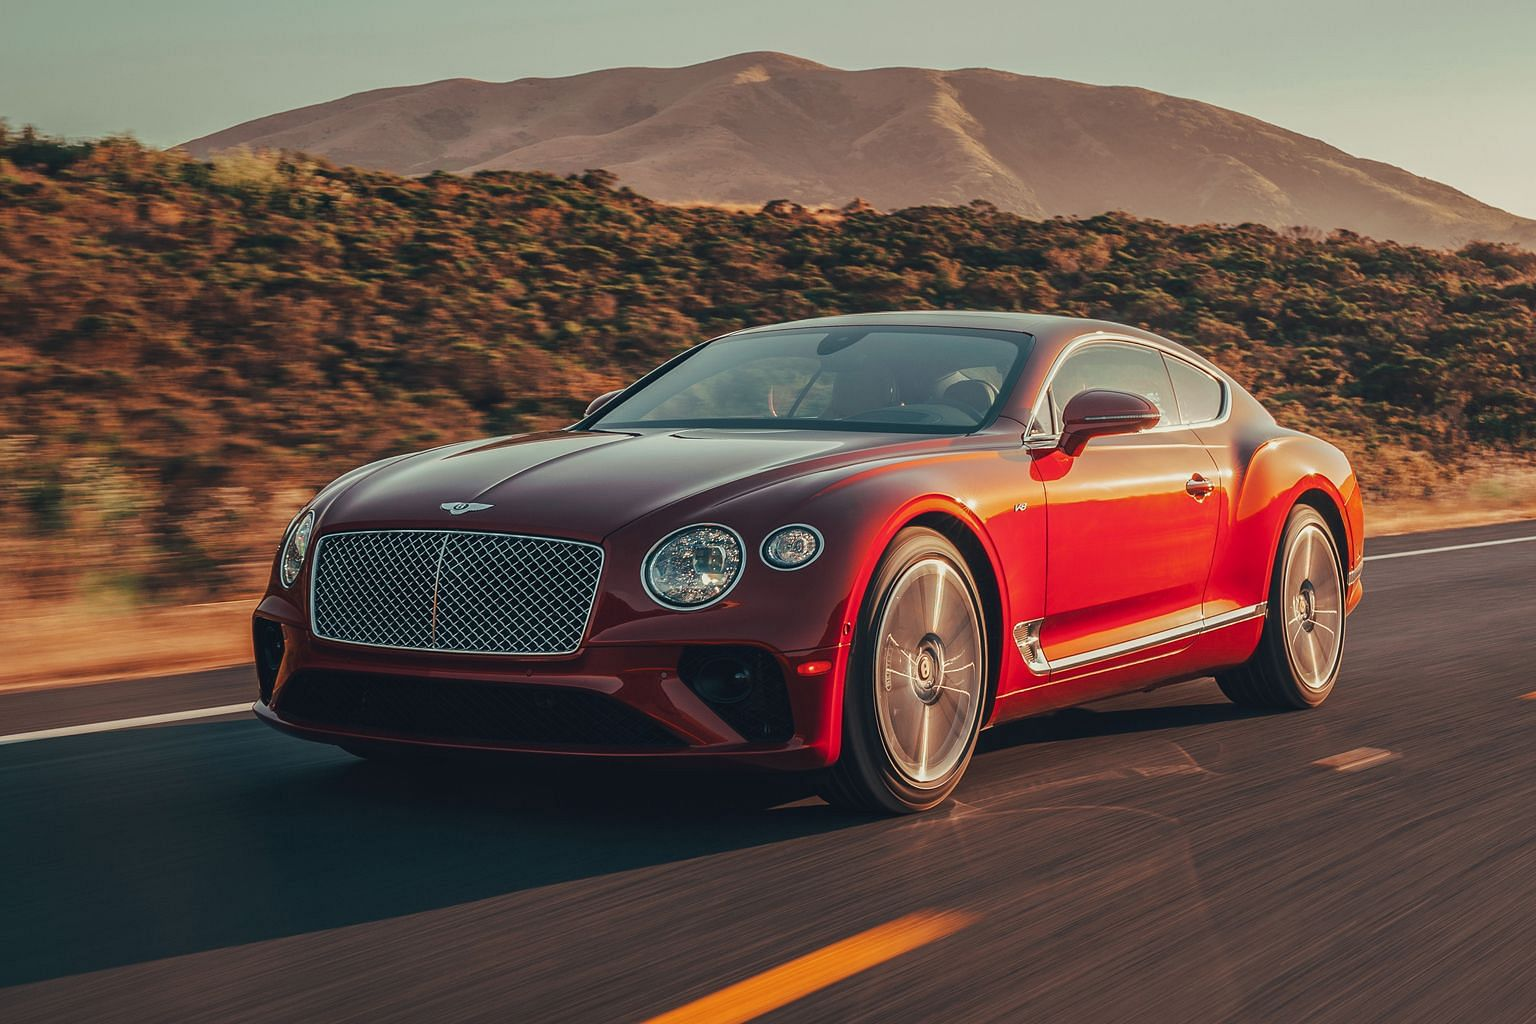 The Bentley Continental GT's 4-litre V8 variant impresses, completing the century sprint in 4 seconds and hitting a top speed of 318kmh.